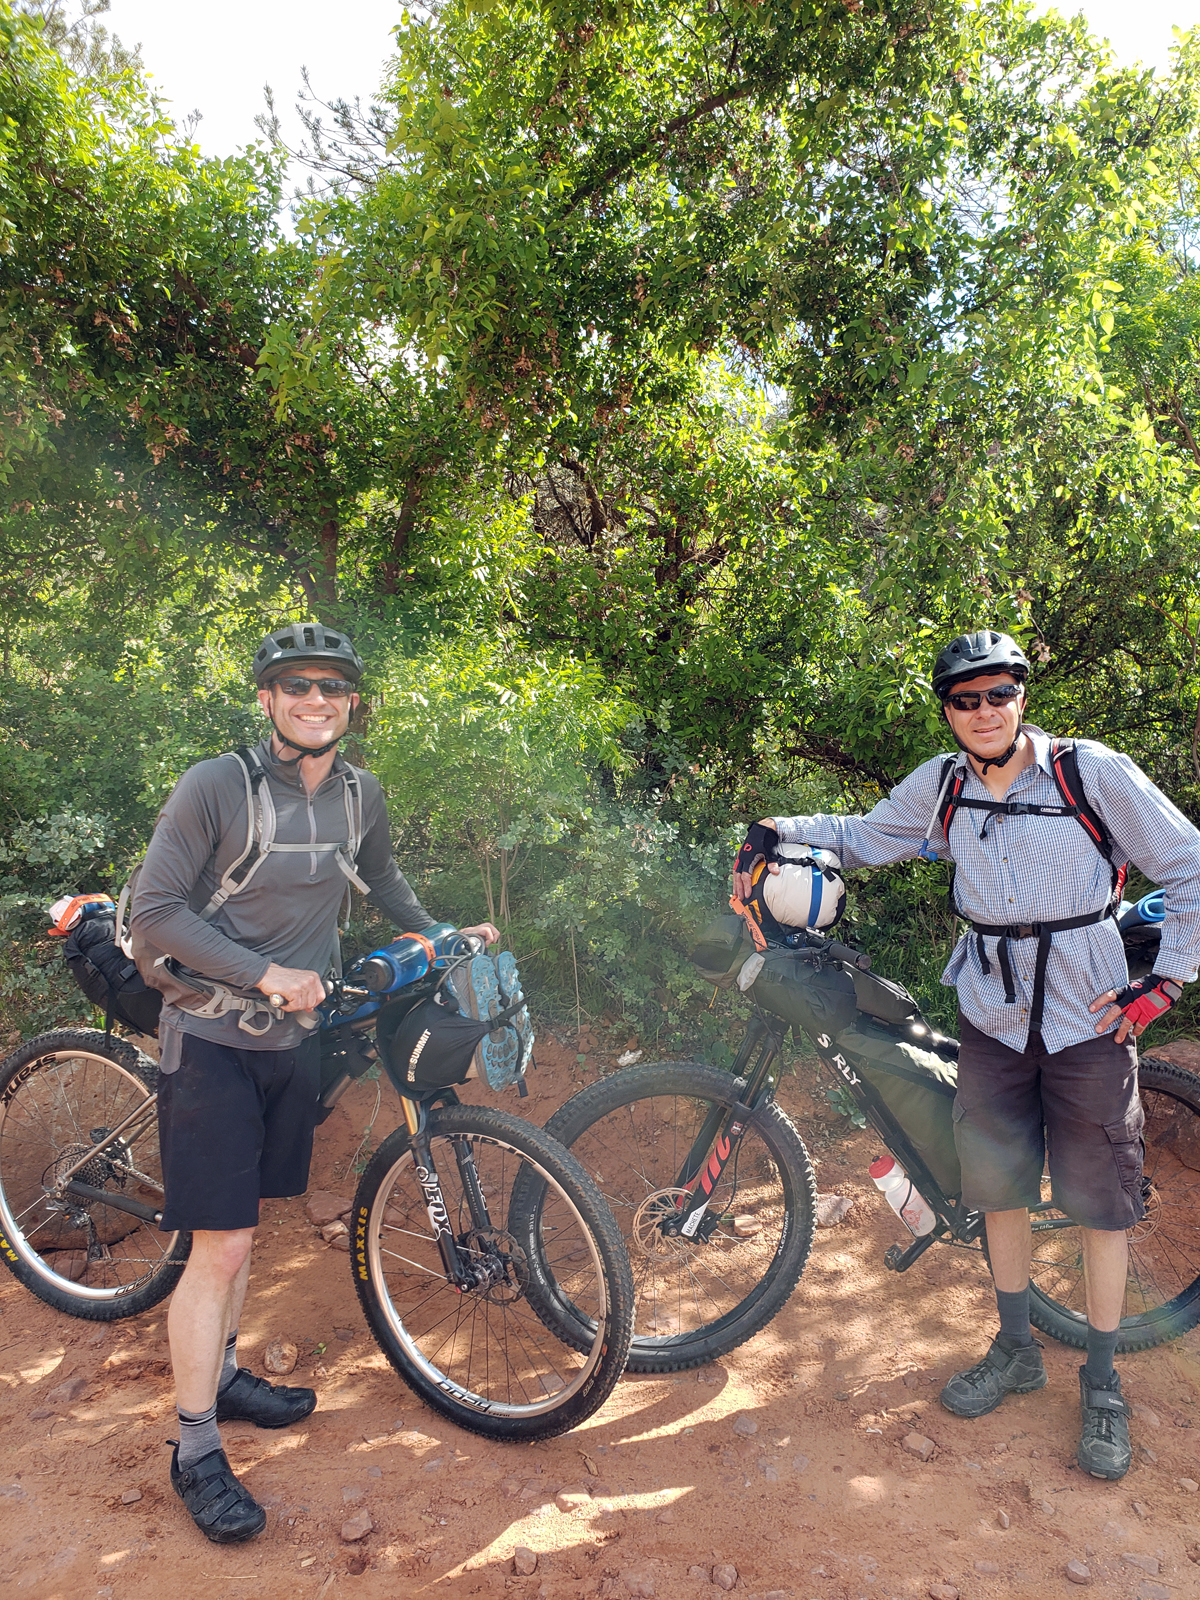 Patrick and Geoff - ready to ride, starting at the Broken Arrow Trailhead in Sedona. The trailhead is shared by hikers, bikers, motorcycles, and ATVs. On the Coconino Loop. Photo by Patrick Walsh